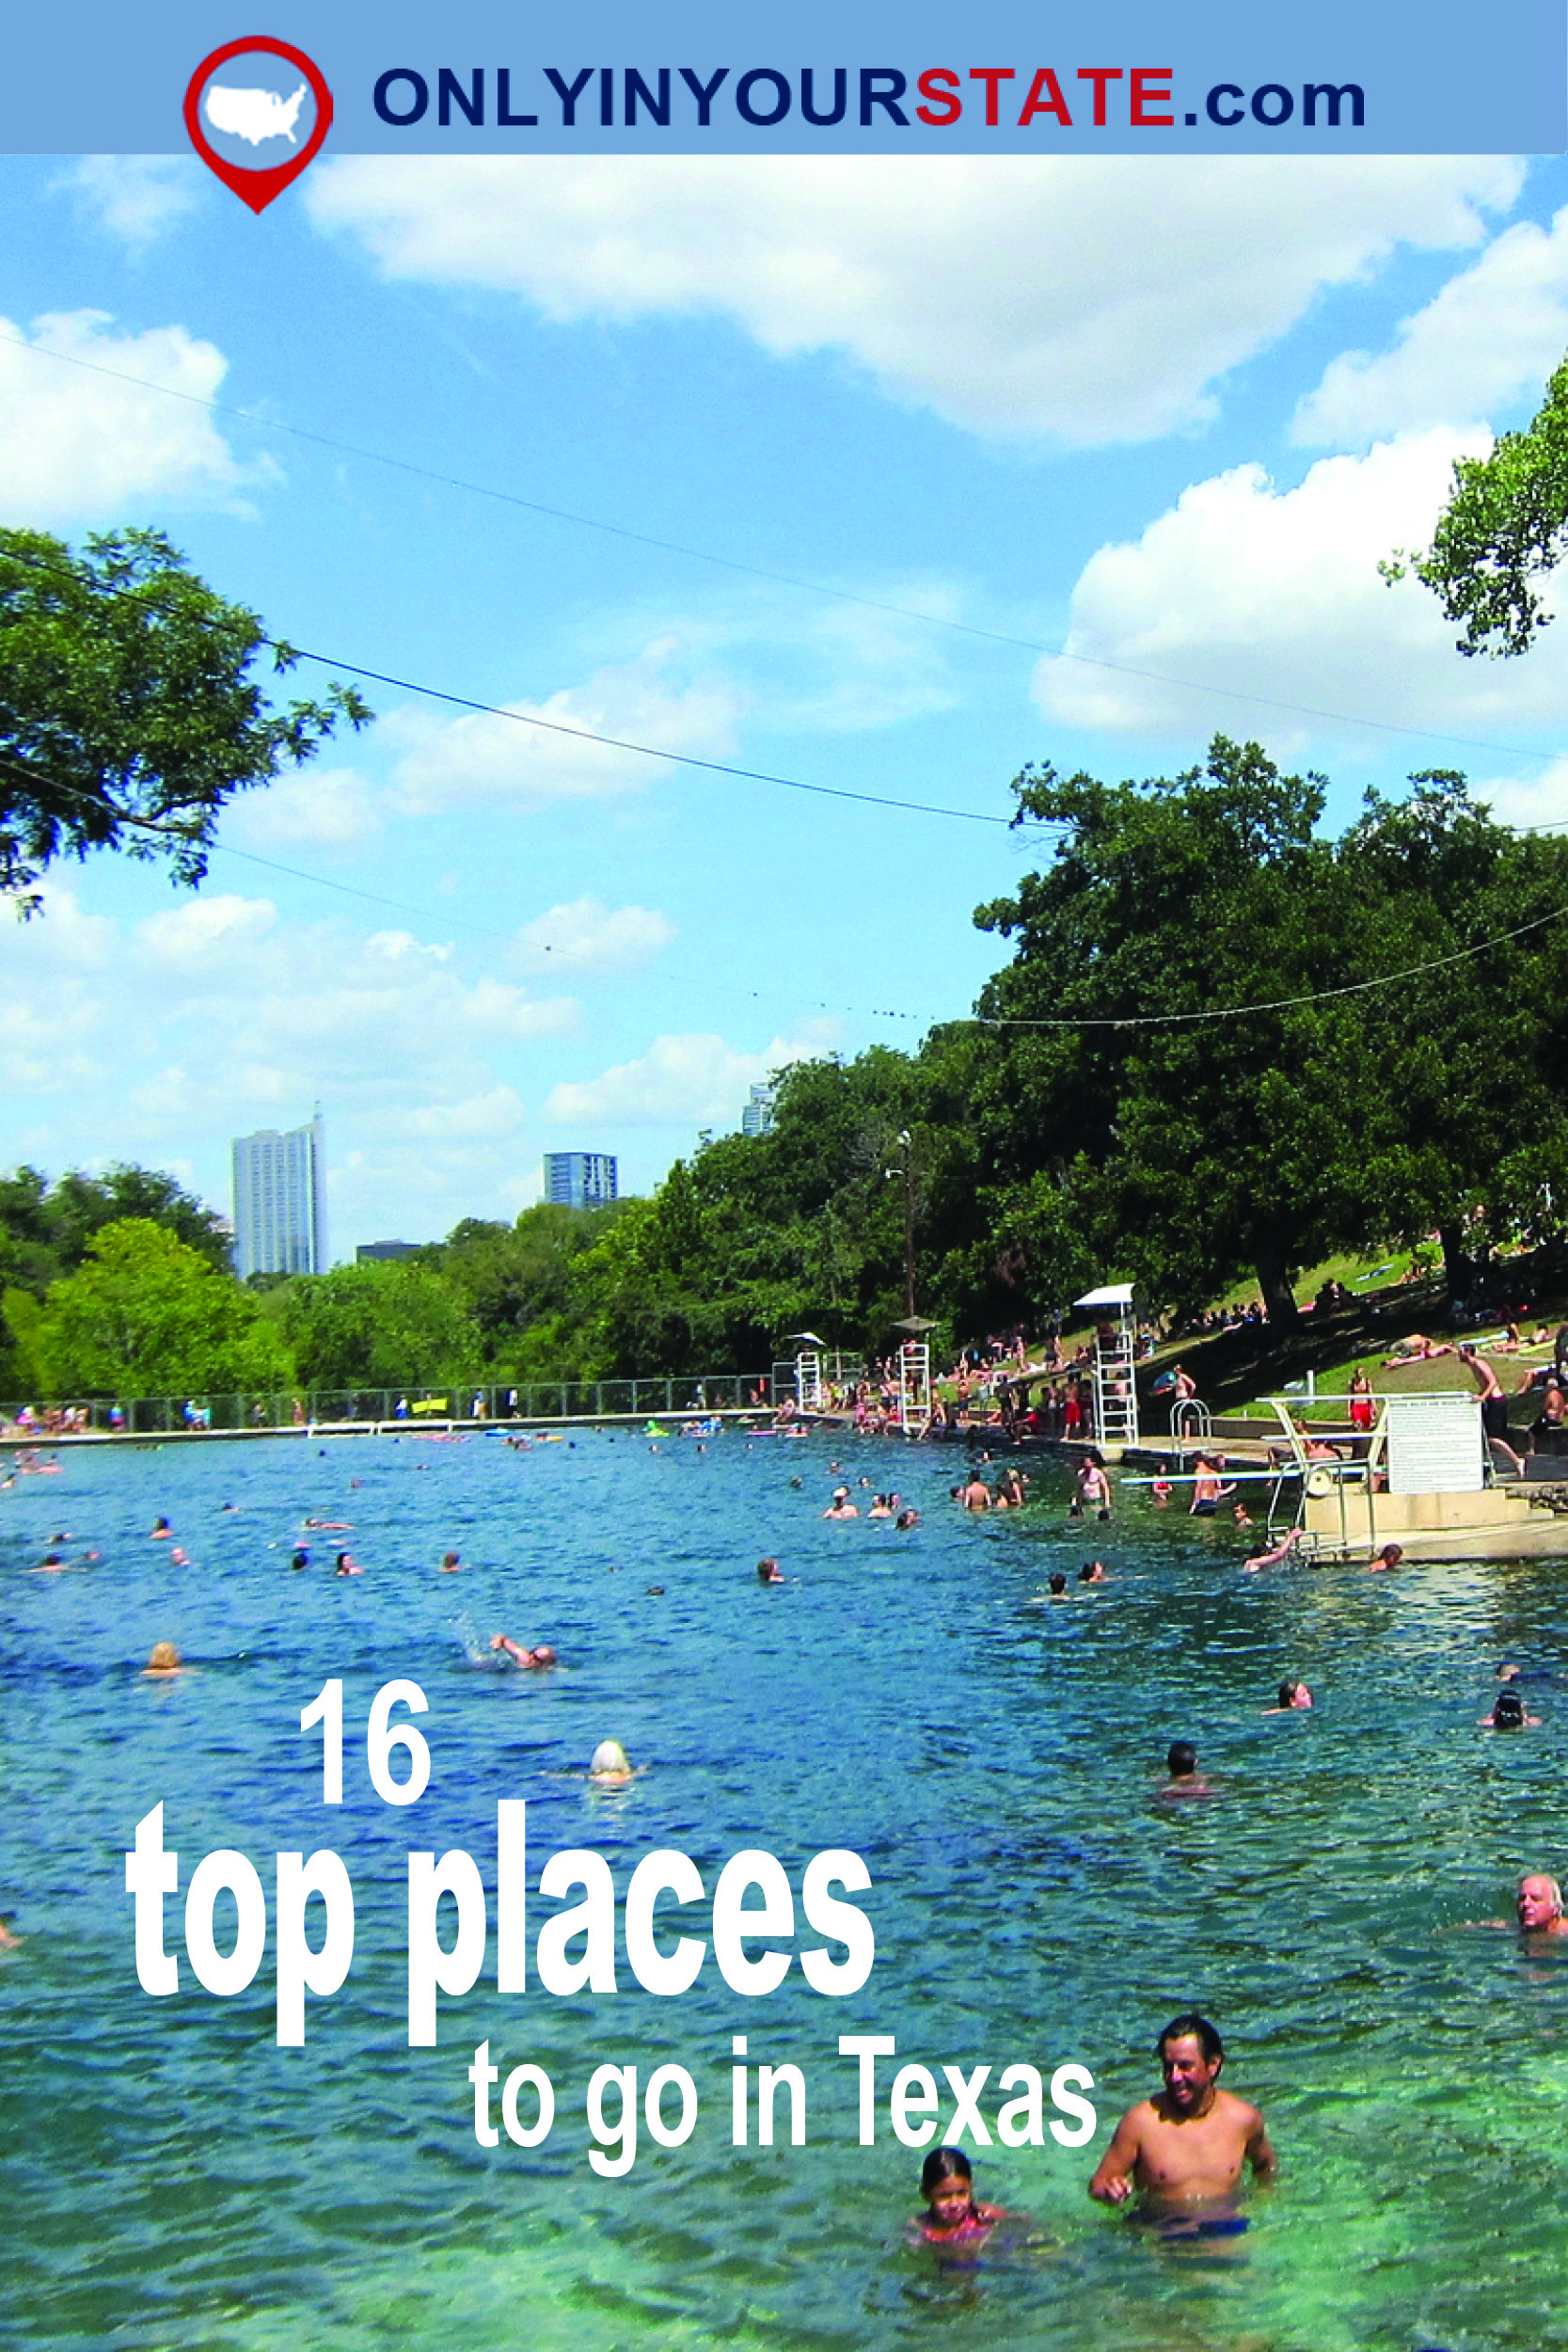 images?q=tbn:ANd9GcQh_l3eQ5xwiPy07kGEXjmjgmBKBRB7H2mRxCGhv1tFWg5c_mWT Interactive Vacation Destinations Texas that you must See @capturingmomentsphotography.net